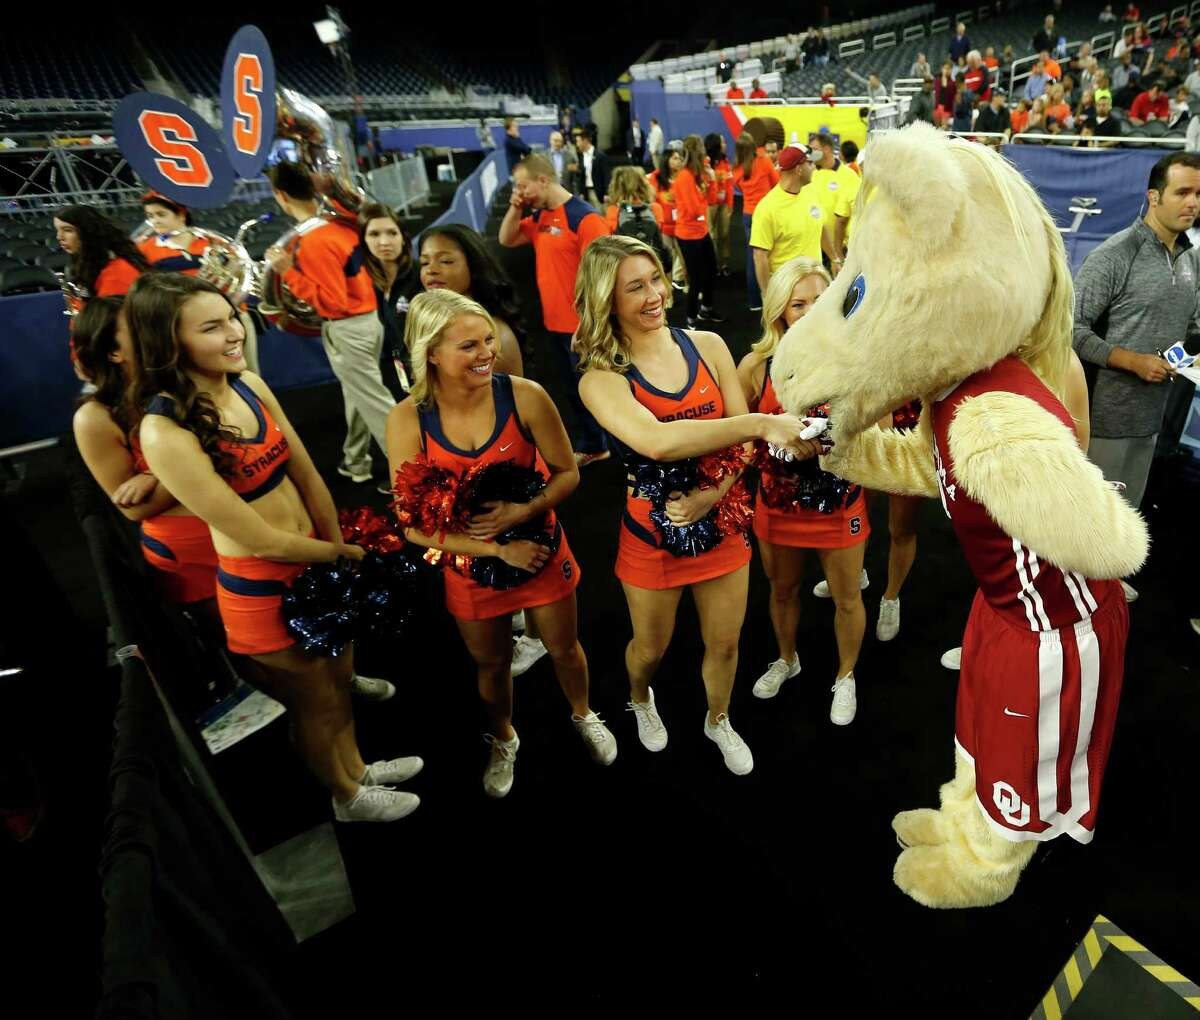 Oklahoma mascot kisses the hand of a Syracuse cheerleader during NCAA Final Four practices at NRG Stadium, Friday, April 1, 2016, in Houston.